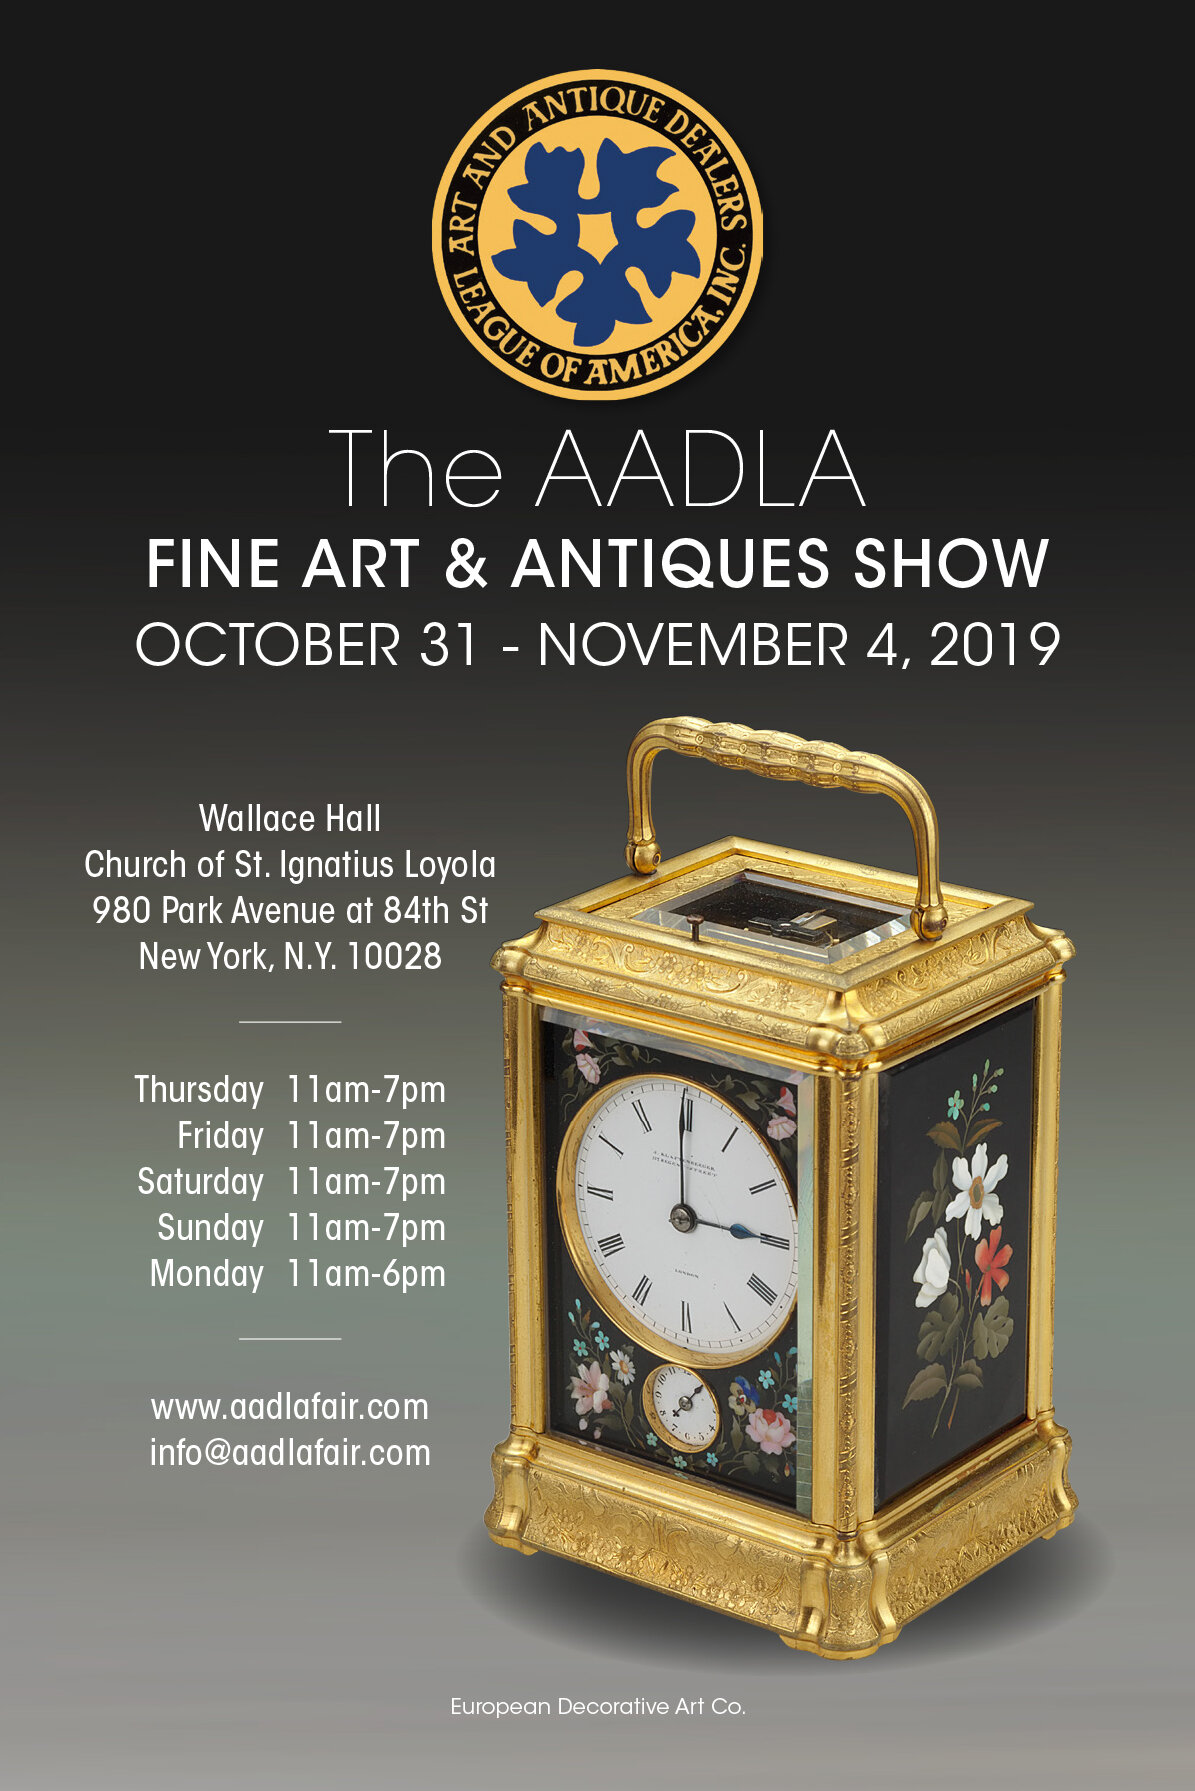 The image is a graphic for the AADLA Fine Art & Antiques Show and includes the AADLA logo at the top and text with details on the art fair. That text reads:  THE AADLA FINE ART & ANTIQUES SHOW October 31 - November 4, 2019  Wallace Hall Church of St. Ignatius Loyola 980 Park Avenue at 84th St New York, N.Y. 10028  Hours: Thursday 11am-7pm Friday 11am-7pm Saturday 11am-7pm Sunday 11am-7pm Monday 11am-7pm  www.aadlafair.com info@aadlafair.com  The image to the right of the text is a small tabletop clock and the caption to it reads: European Decorative Art Co.